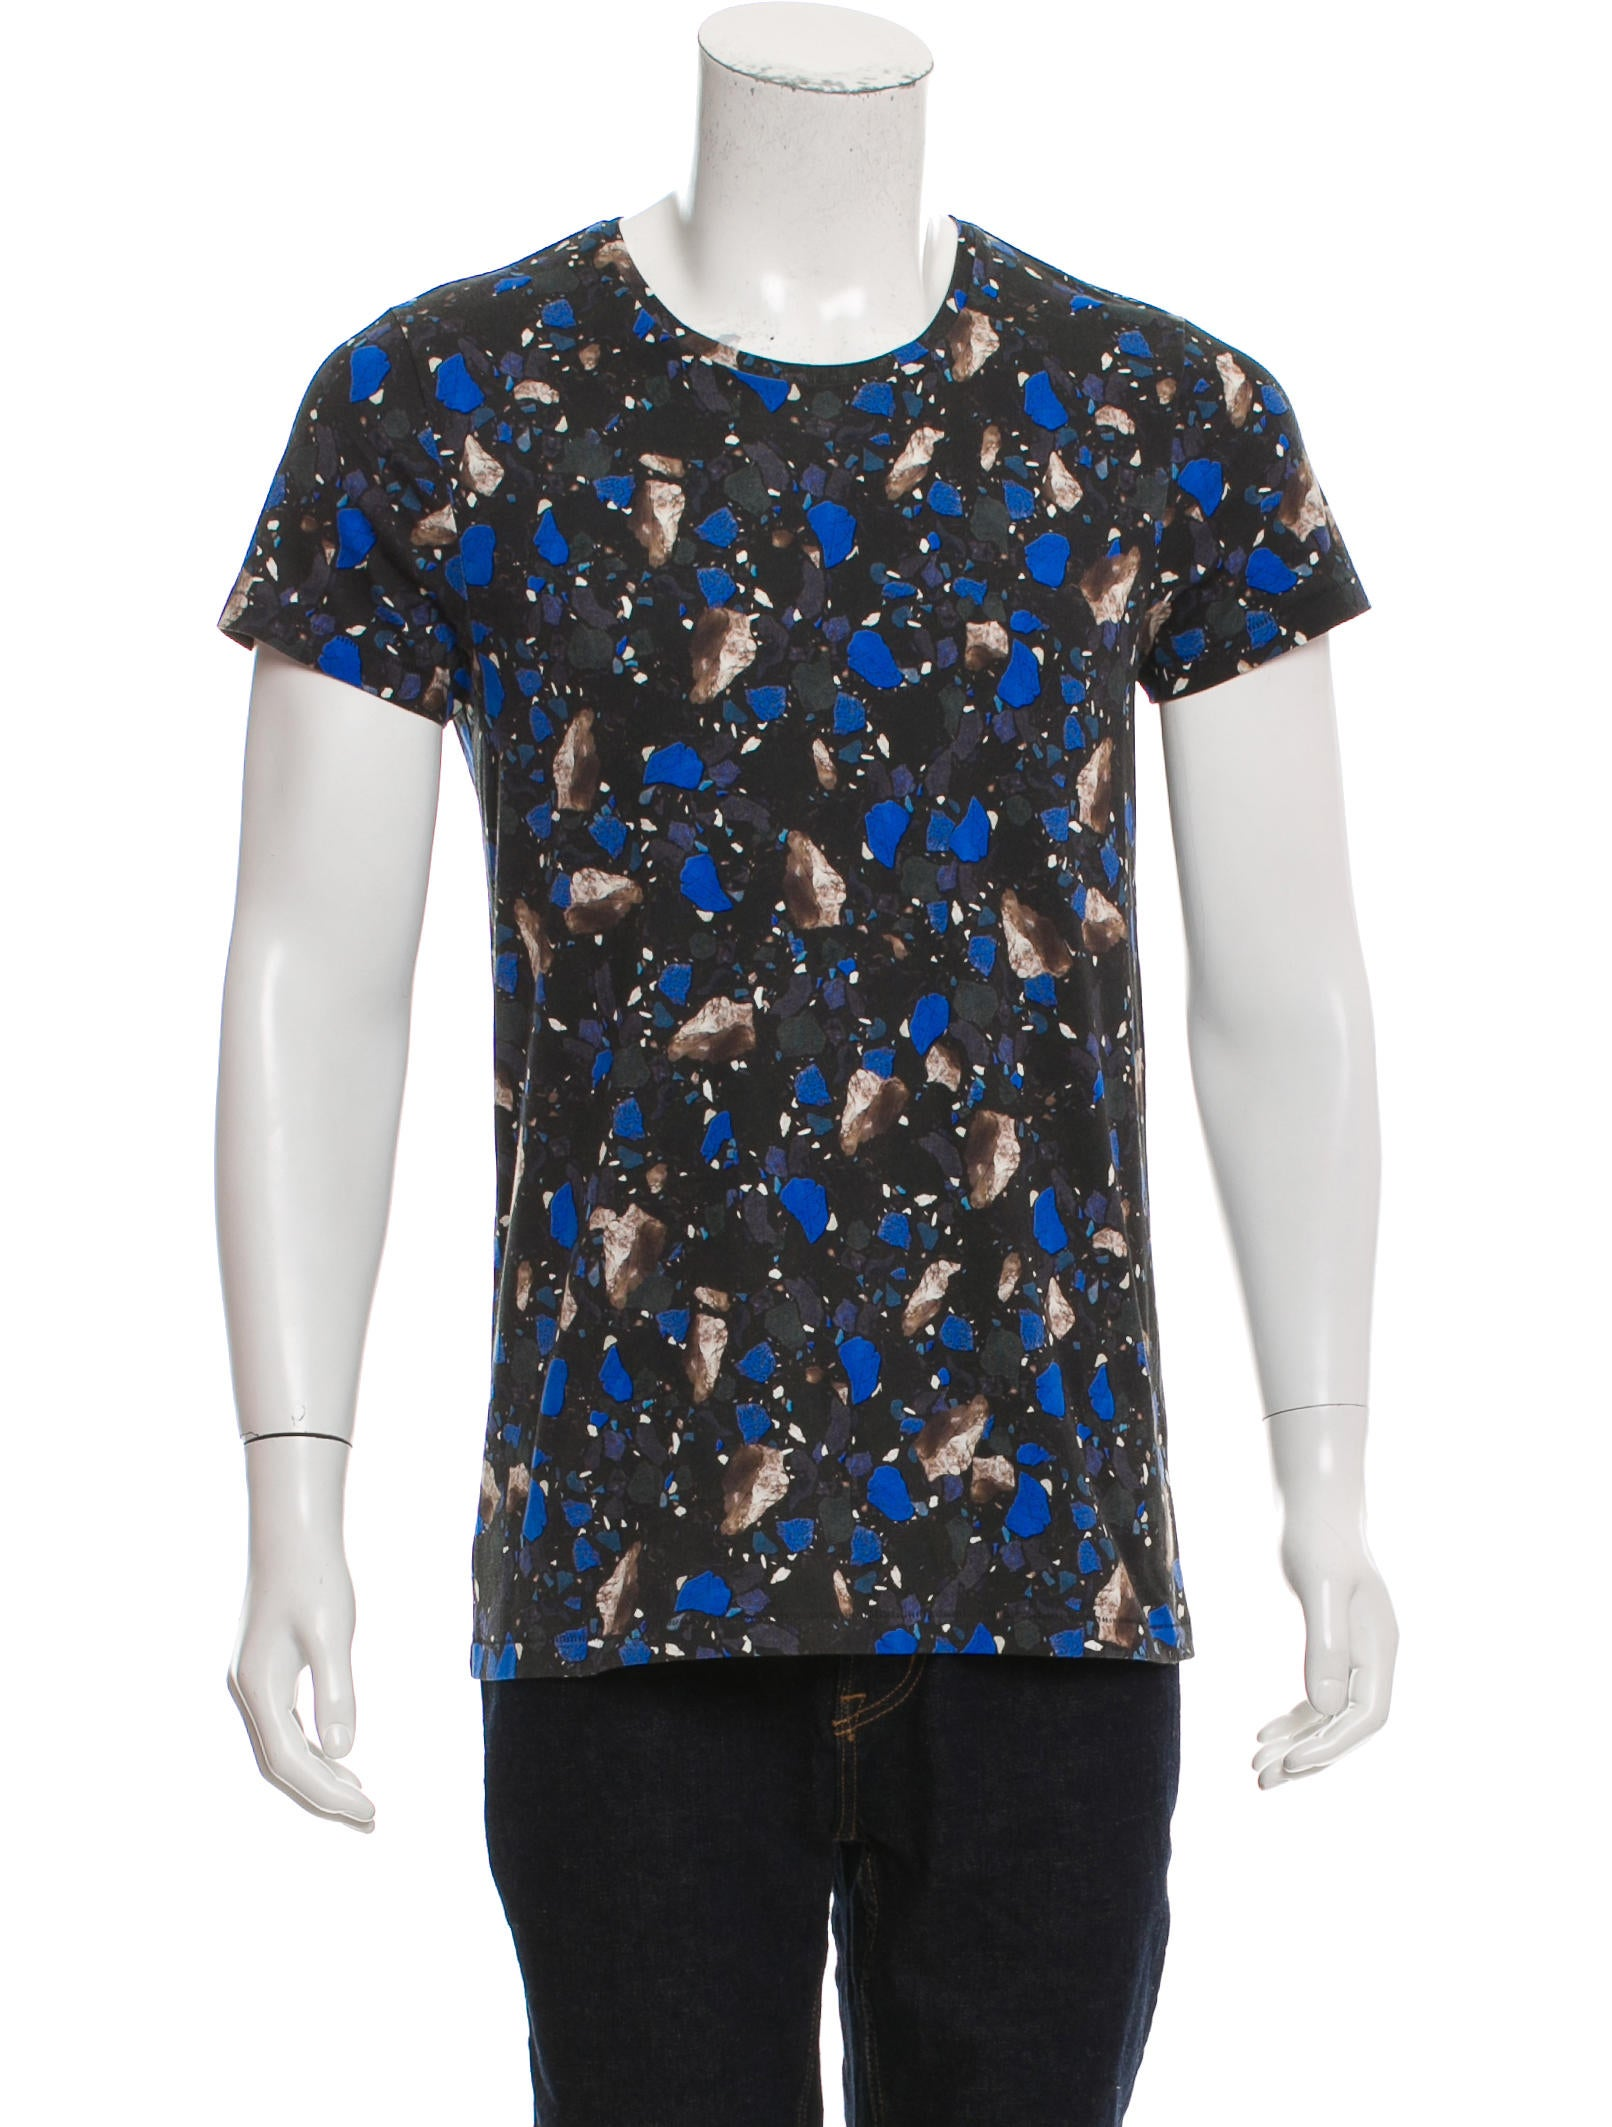 Acne studios graphic print t shirt clothing acn33020 for T shirt graphic printing